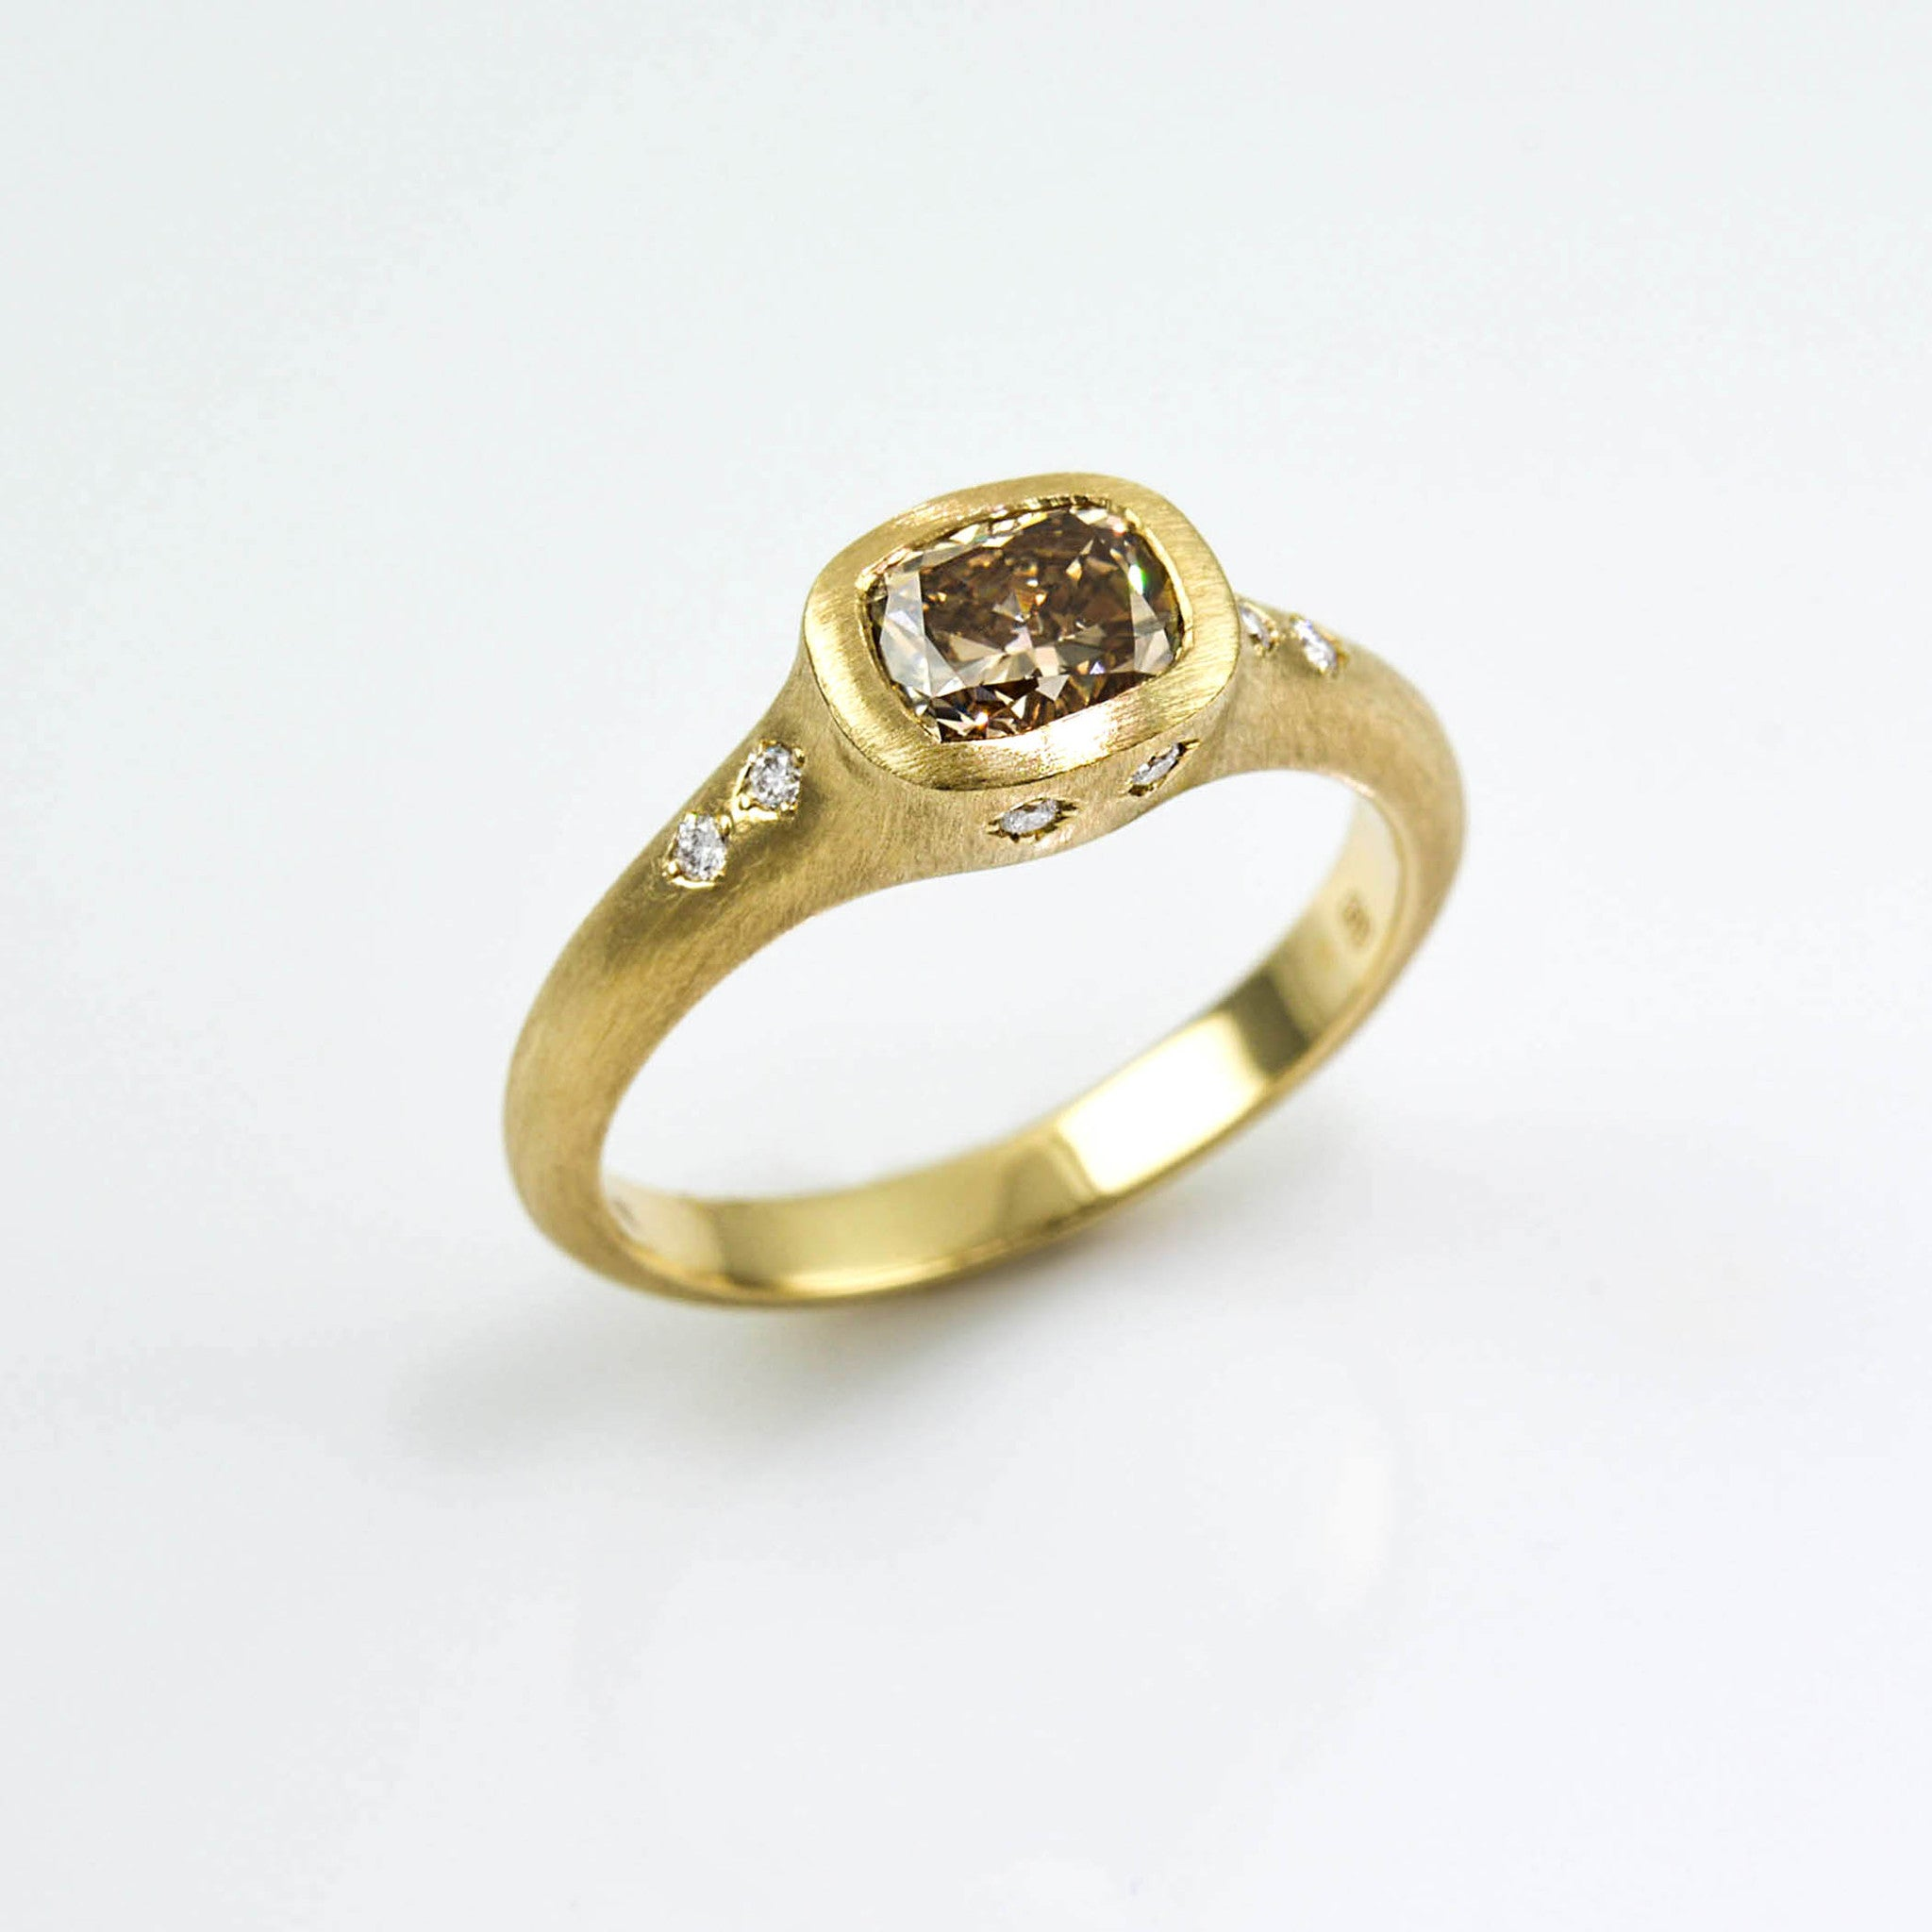 ethical top sea engagement handmade glass rings wedding brushed gold gemstone jewellery htm fairtrade